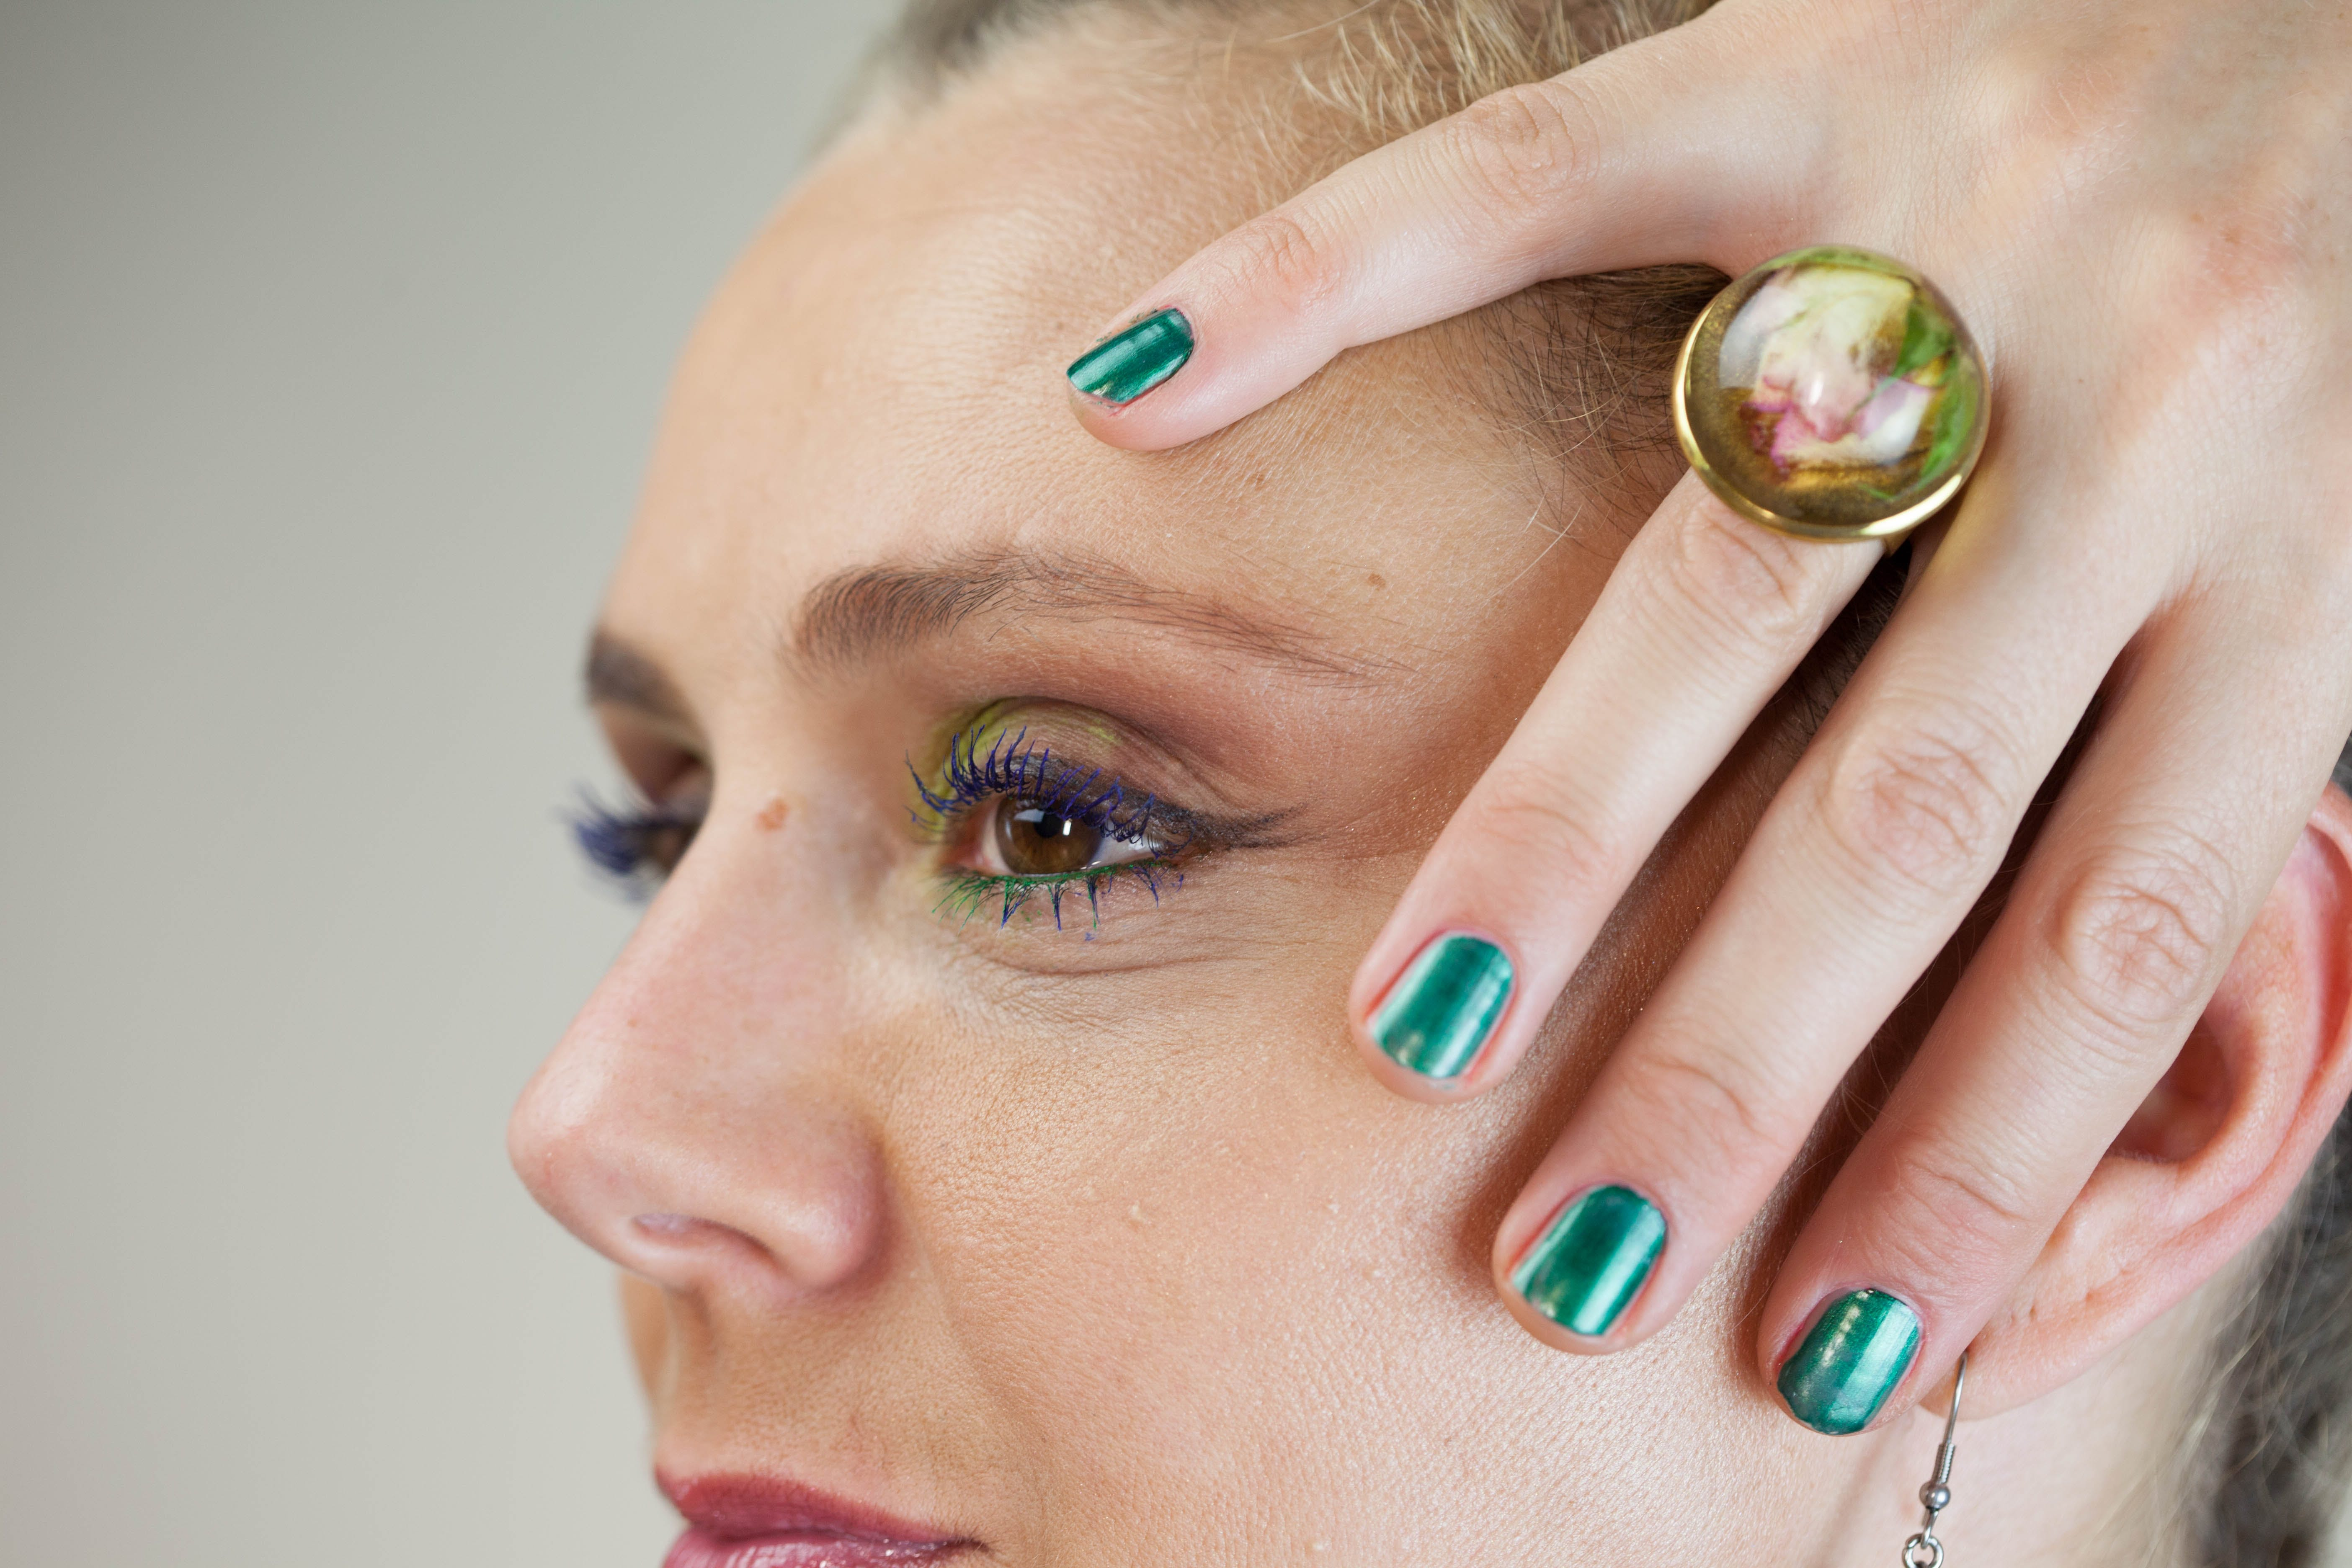 Person Wearing Gold-colored Ring Holding Face